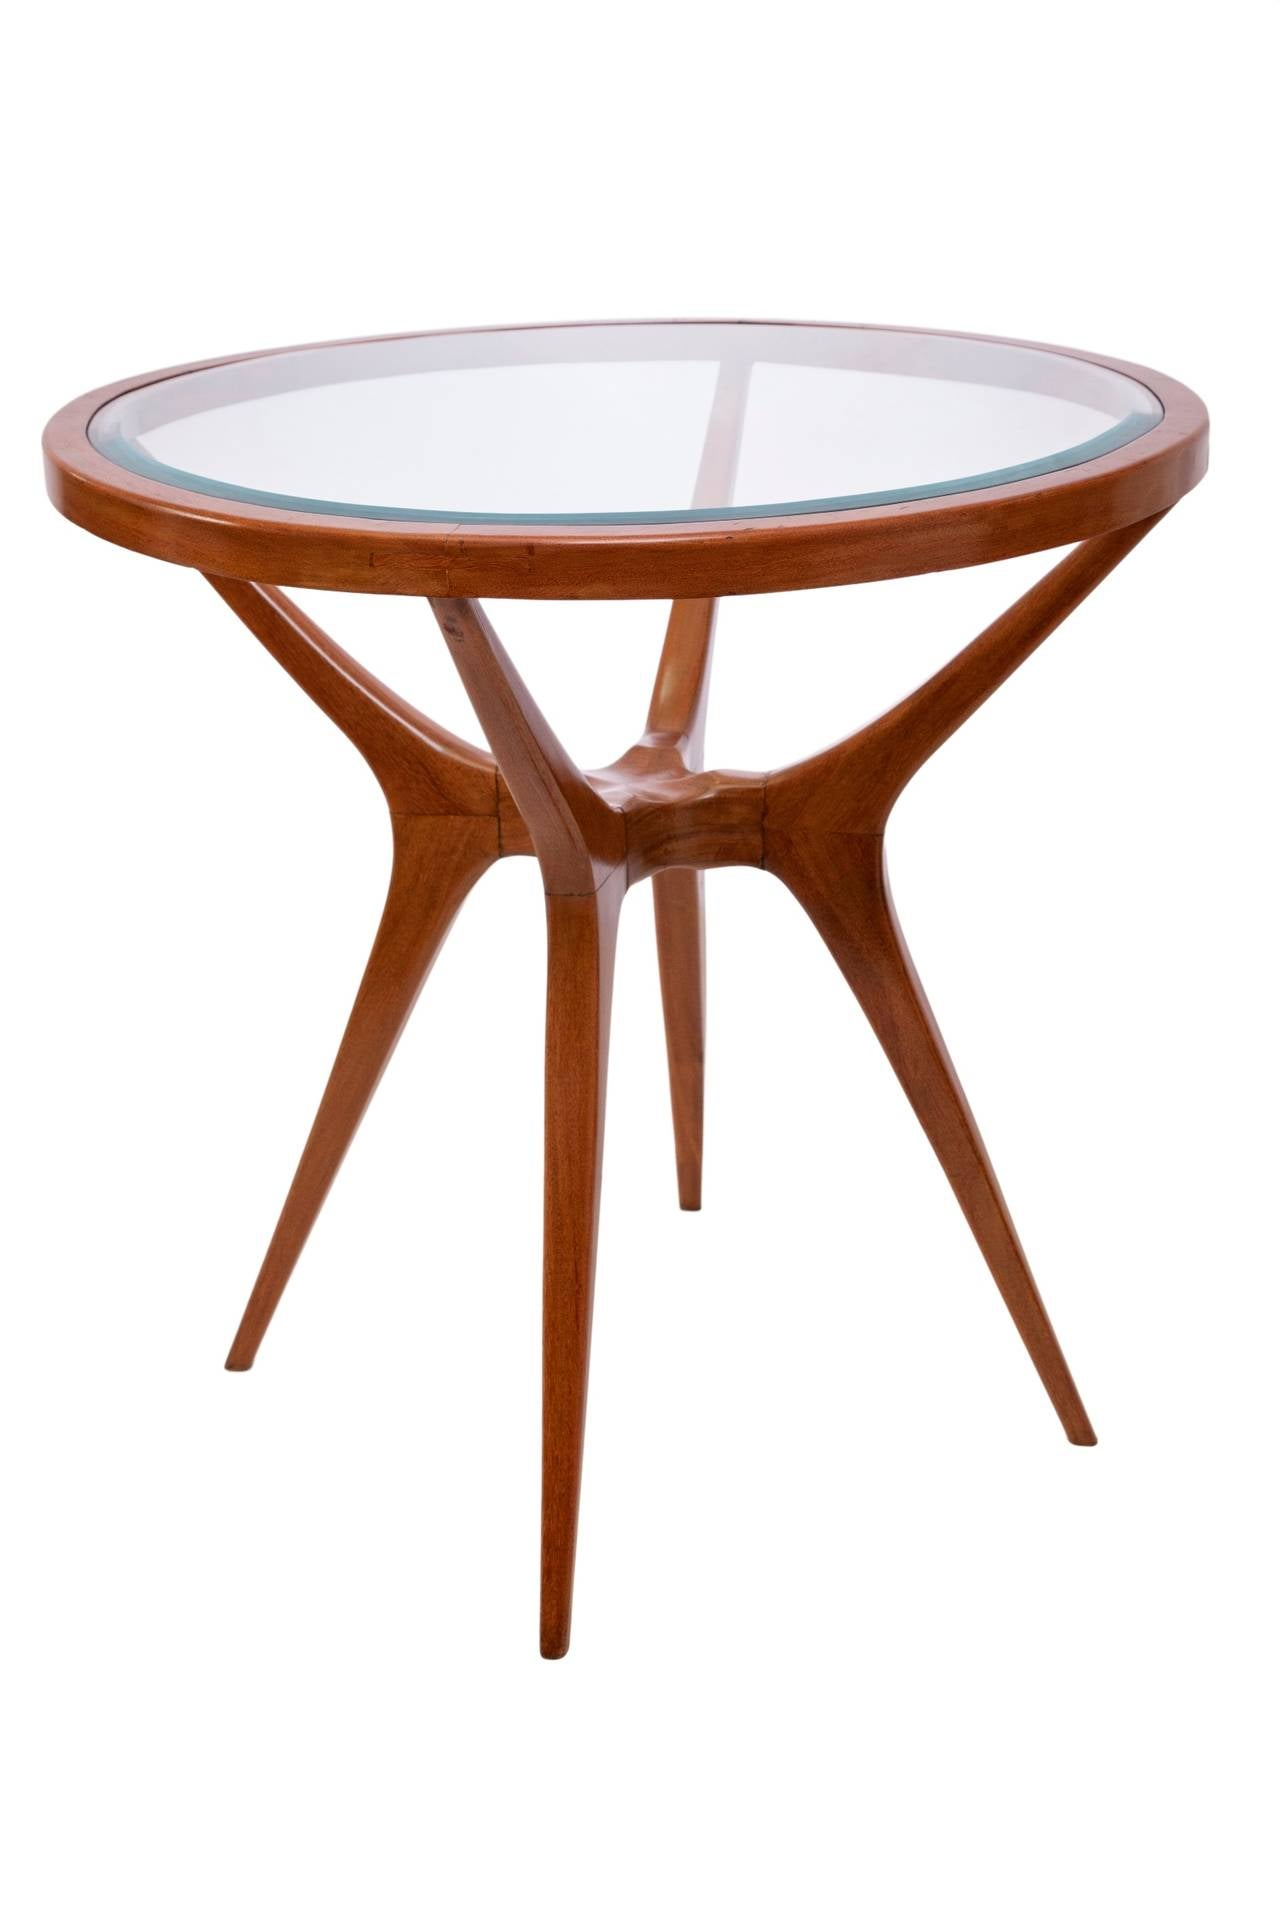 Perfect Scapinelli Inspired Round Glass Top Side Table In Brazilian Cumaru Wood 2